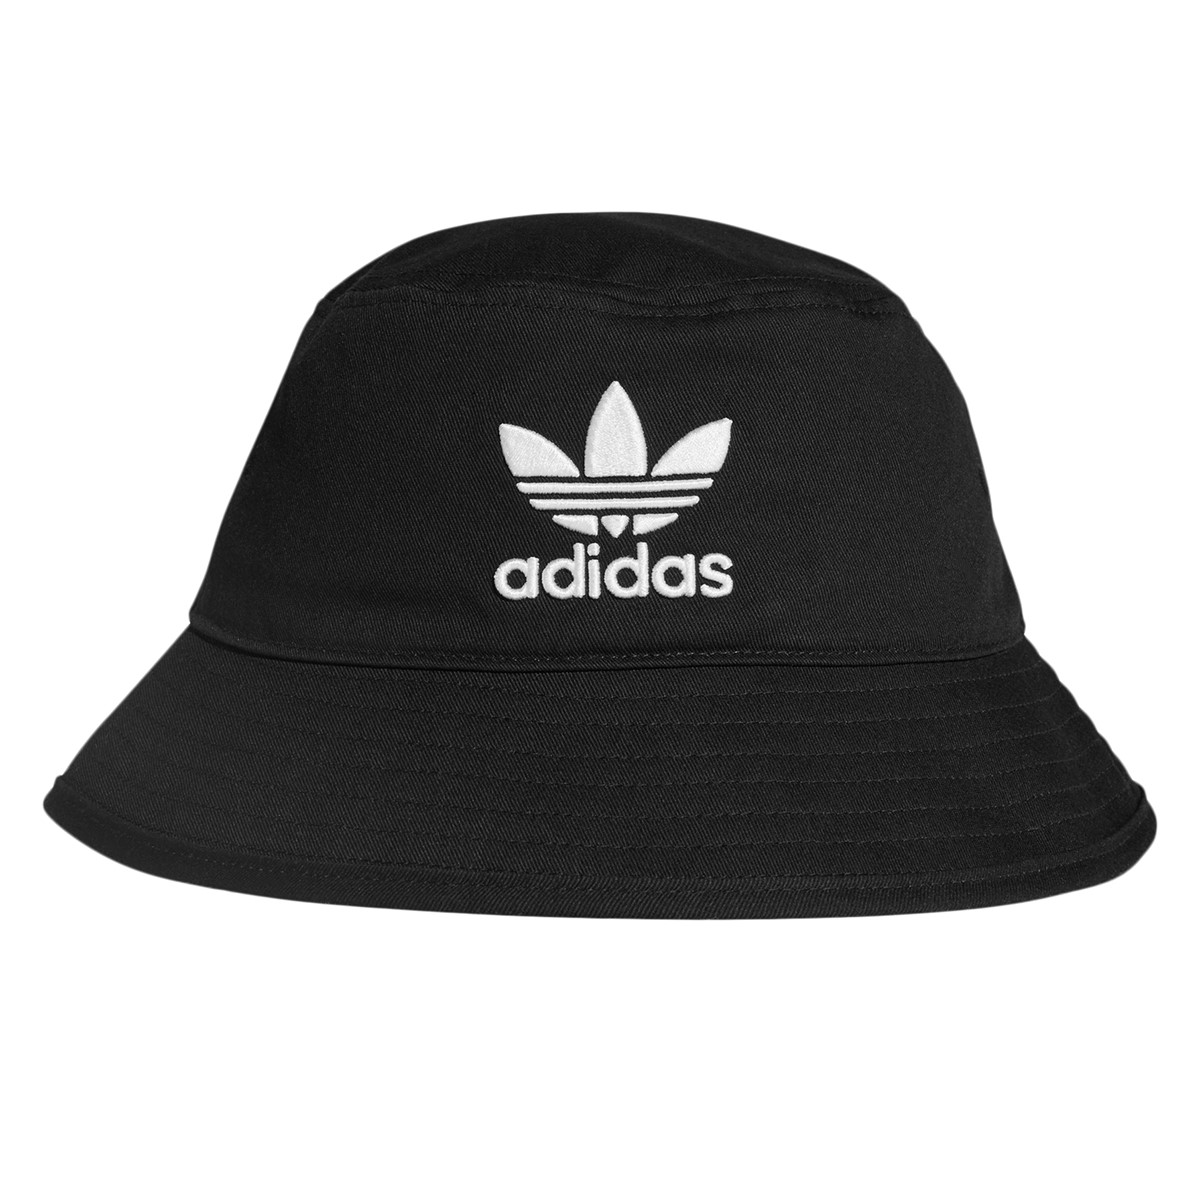 0070838a0f1d ... new zealand black bucket hat 4379a 15020 where can i buy adidas ...